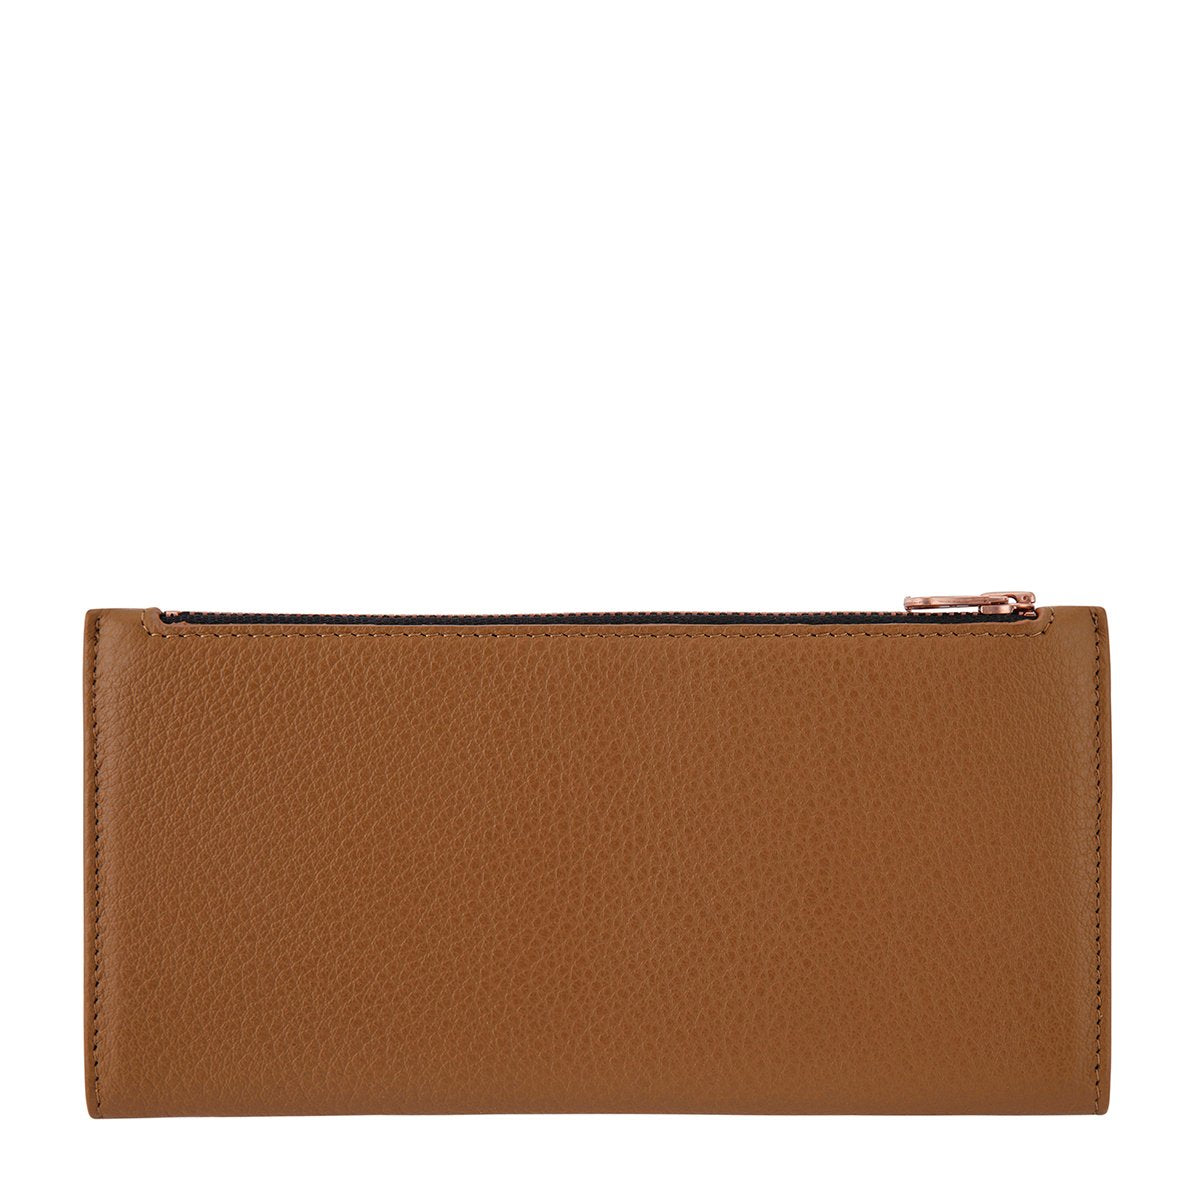 In The Beginning Wallet Tan Leather NZ Free Courier